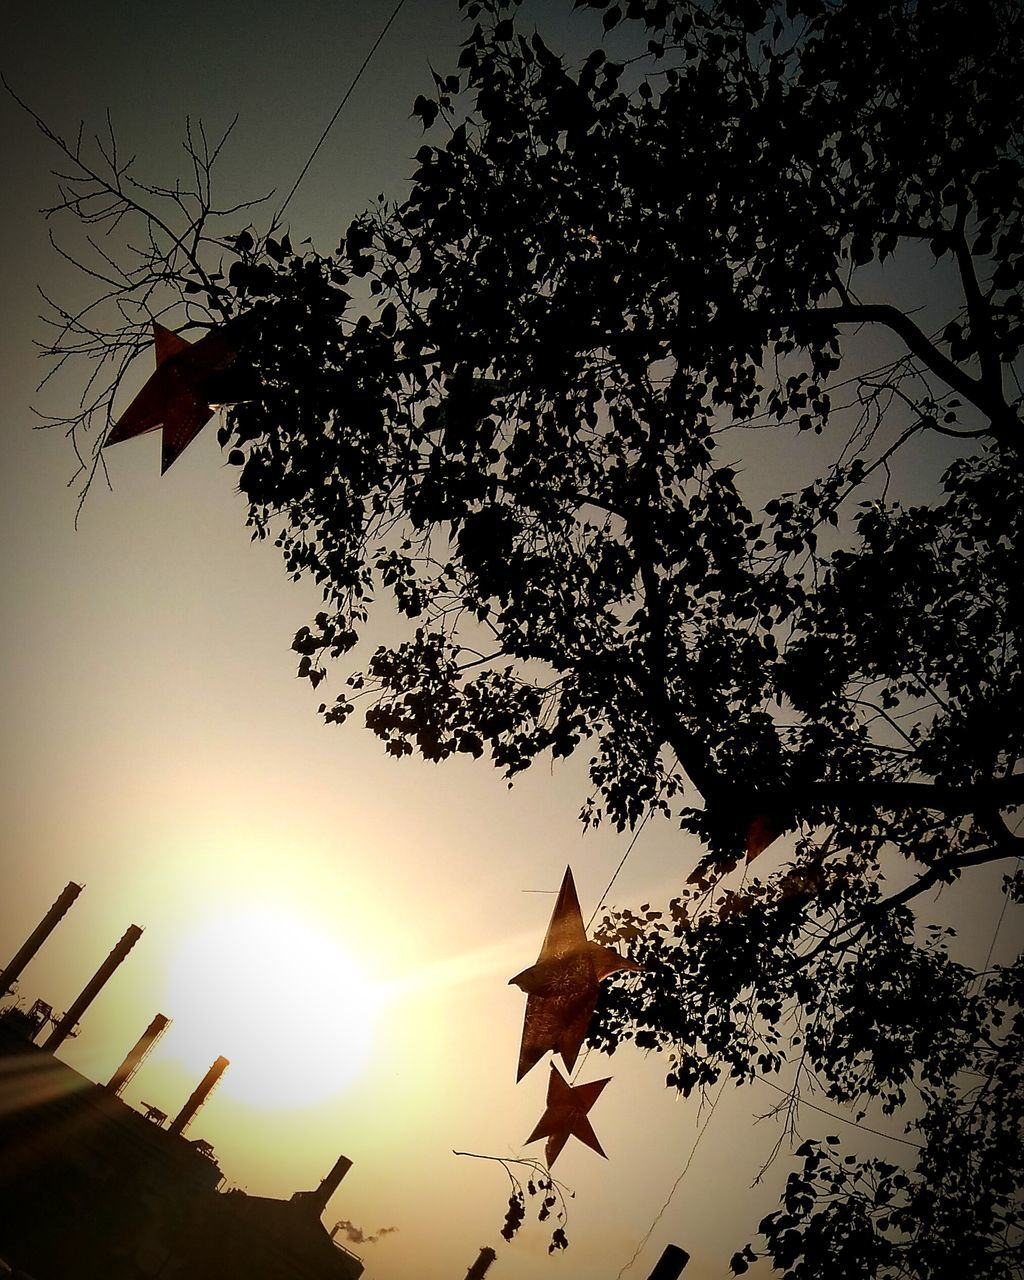 tree, sunset, sun, sky, low angle view, nature, sunlight, silhouette, growth, outdoors, hanging, no people, leaf, flag, beauty in nature, branch, flying, day